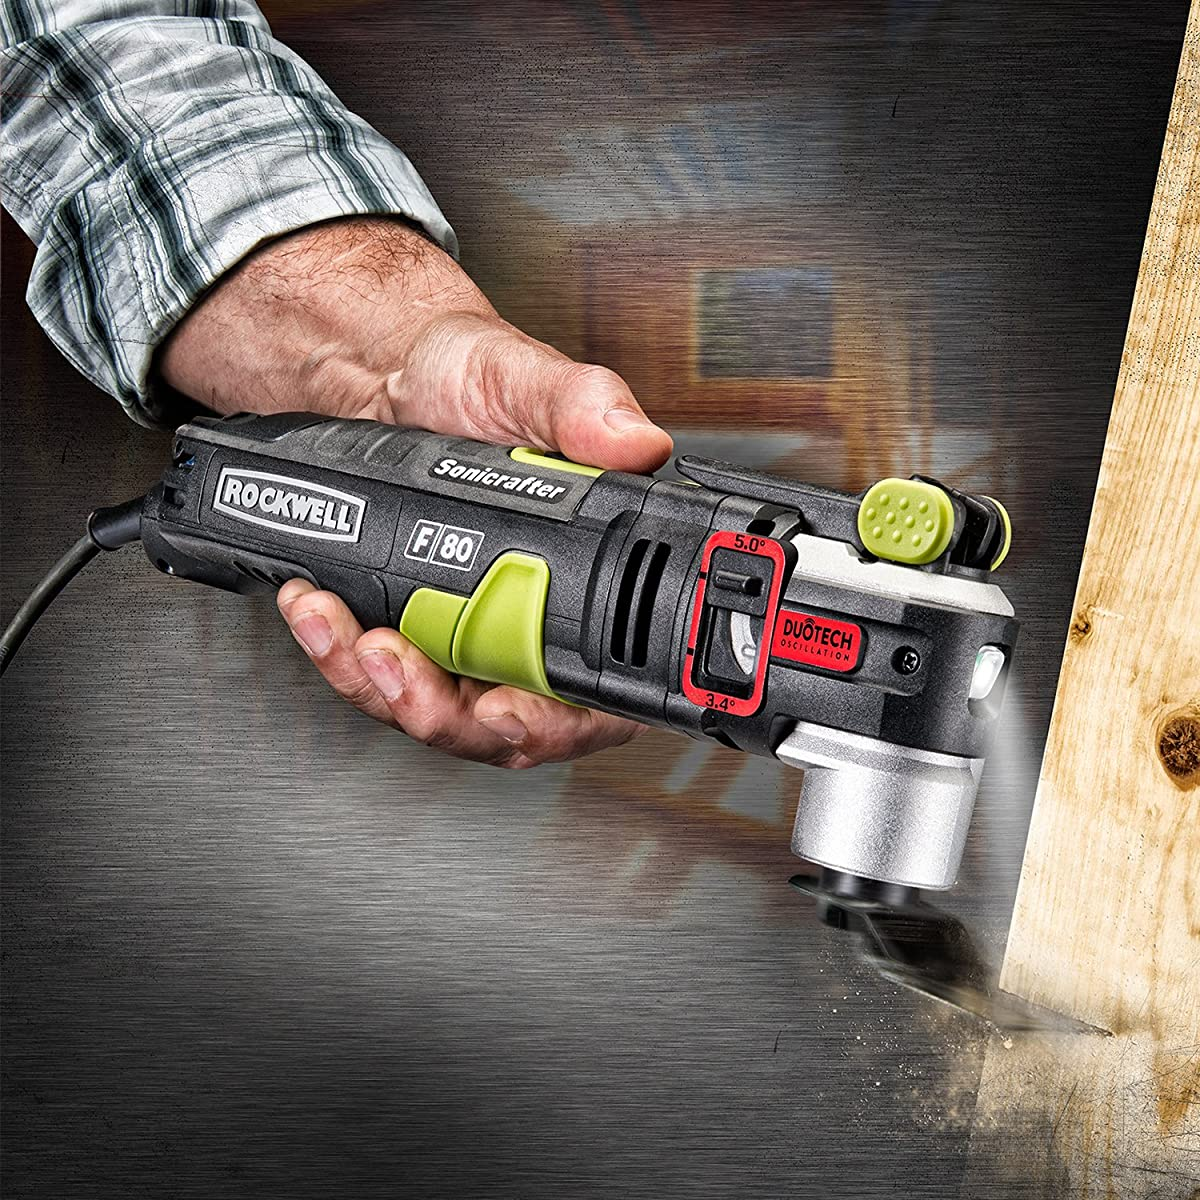 Rockwell RK5151K 4.2 Amp Sonicrafter F80 Oscillating Multi-Tool with Duotech Oscillation Angle Technology and 10-Piece Accessory kit